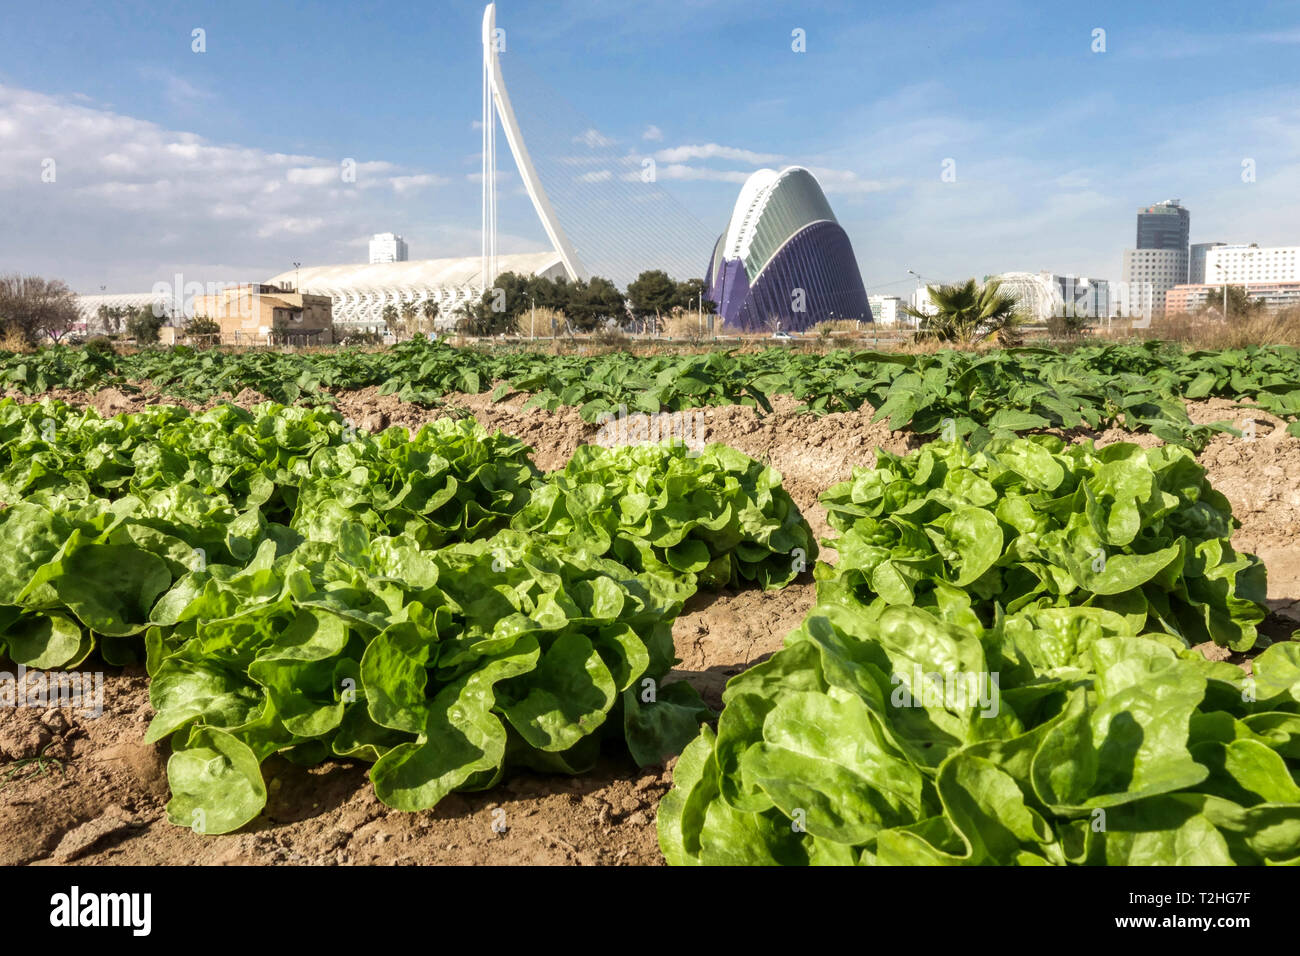 Valencia City of Science, in the foreground lettuce field, Spain agriculture Europe Stock Photo